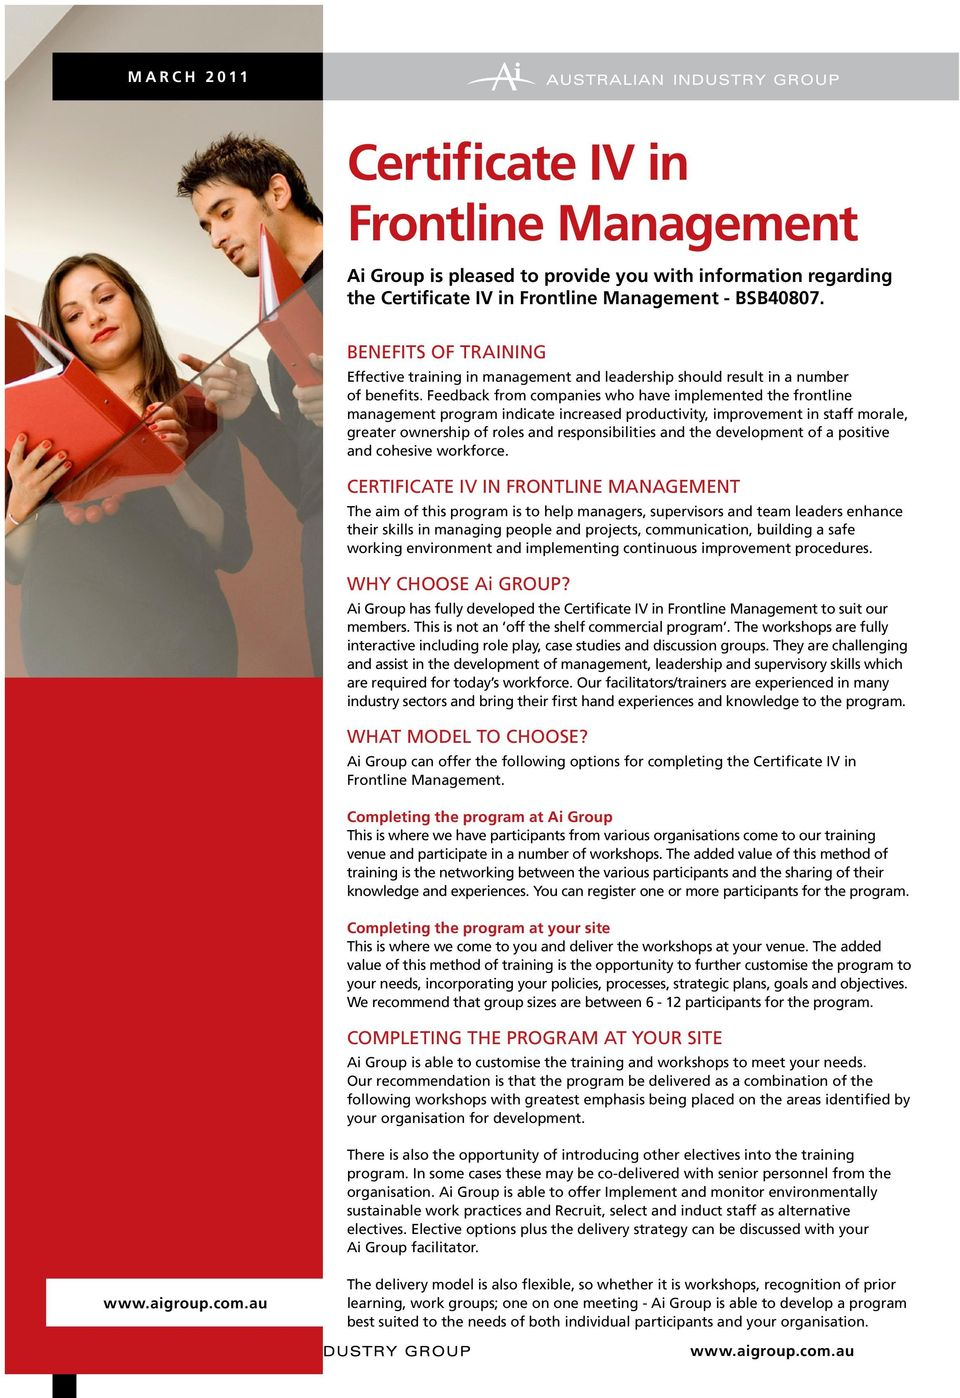 Feedback from companies who have implemented the frontline management program indicate increased productivity, improvement in staff morale, greater ownership of roles and responsibilities and the